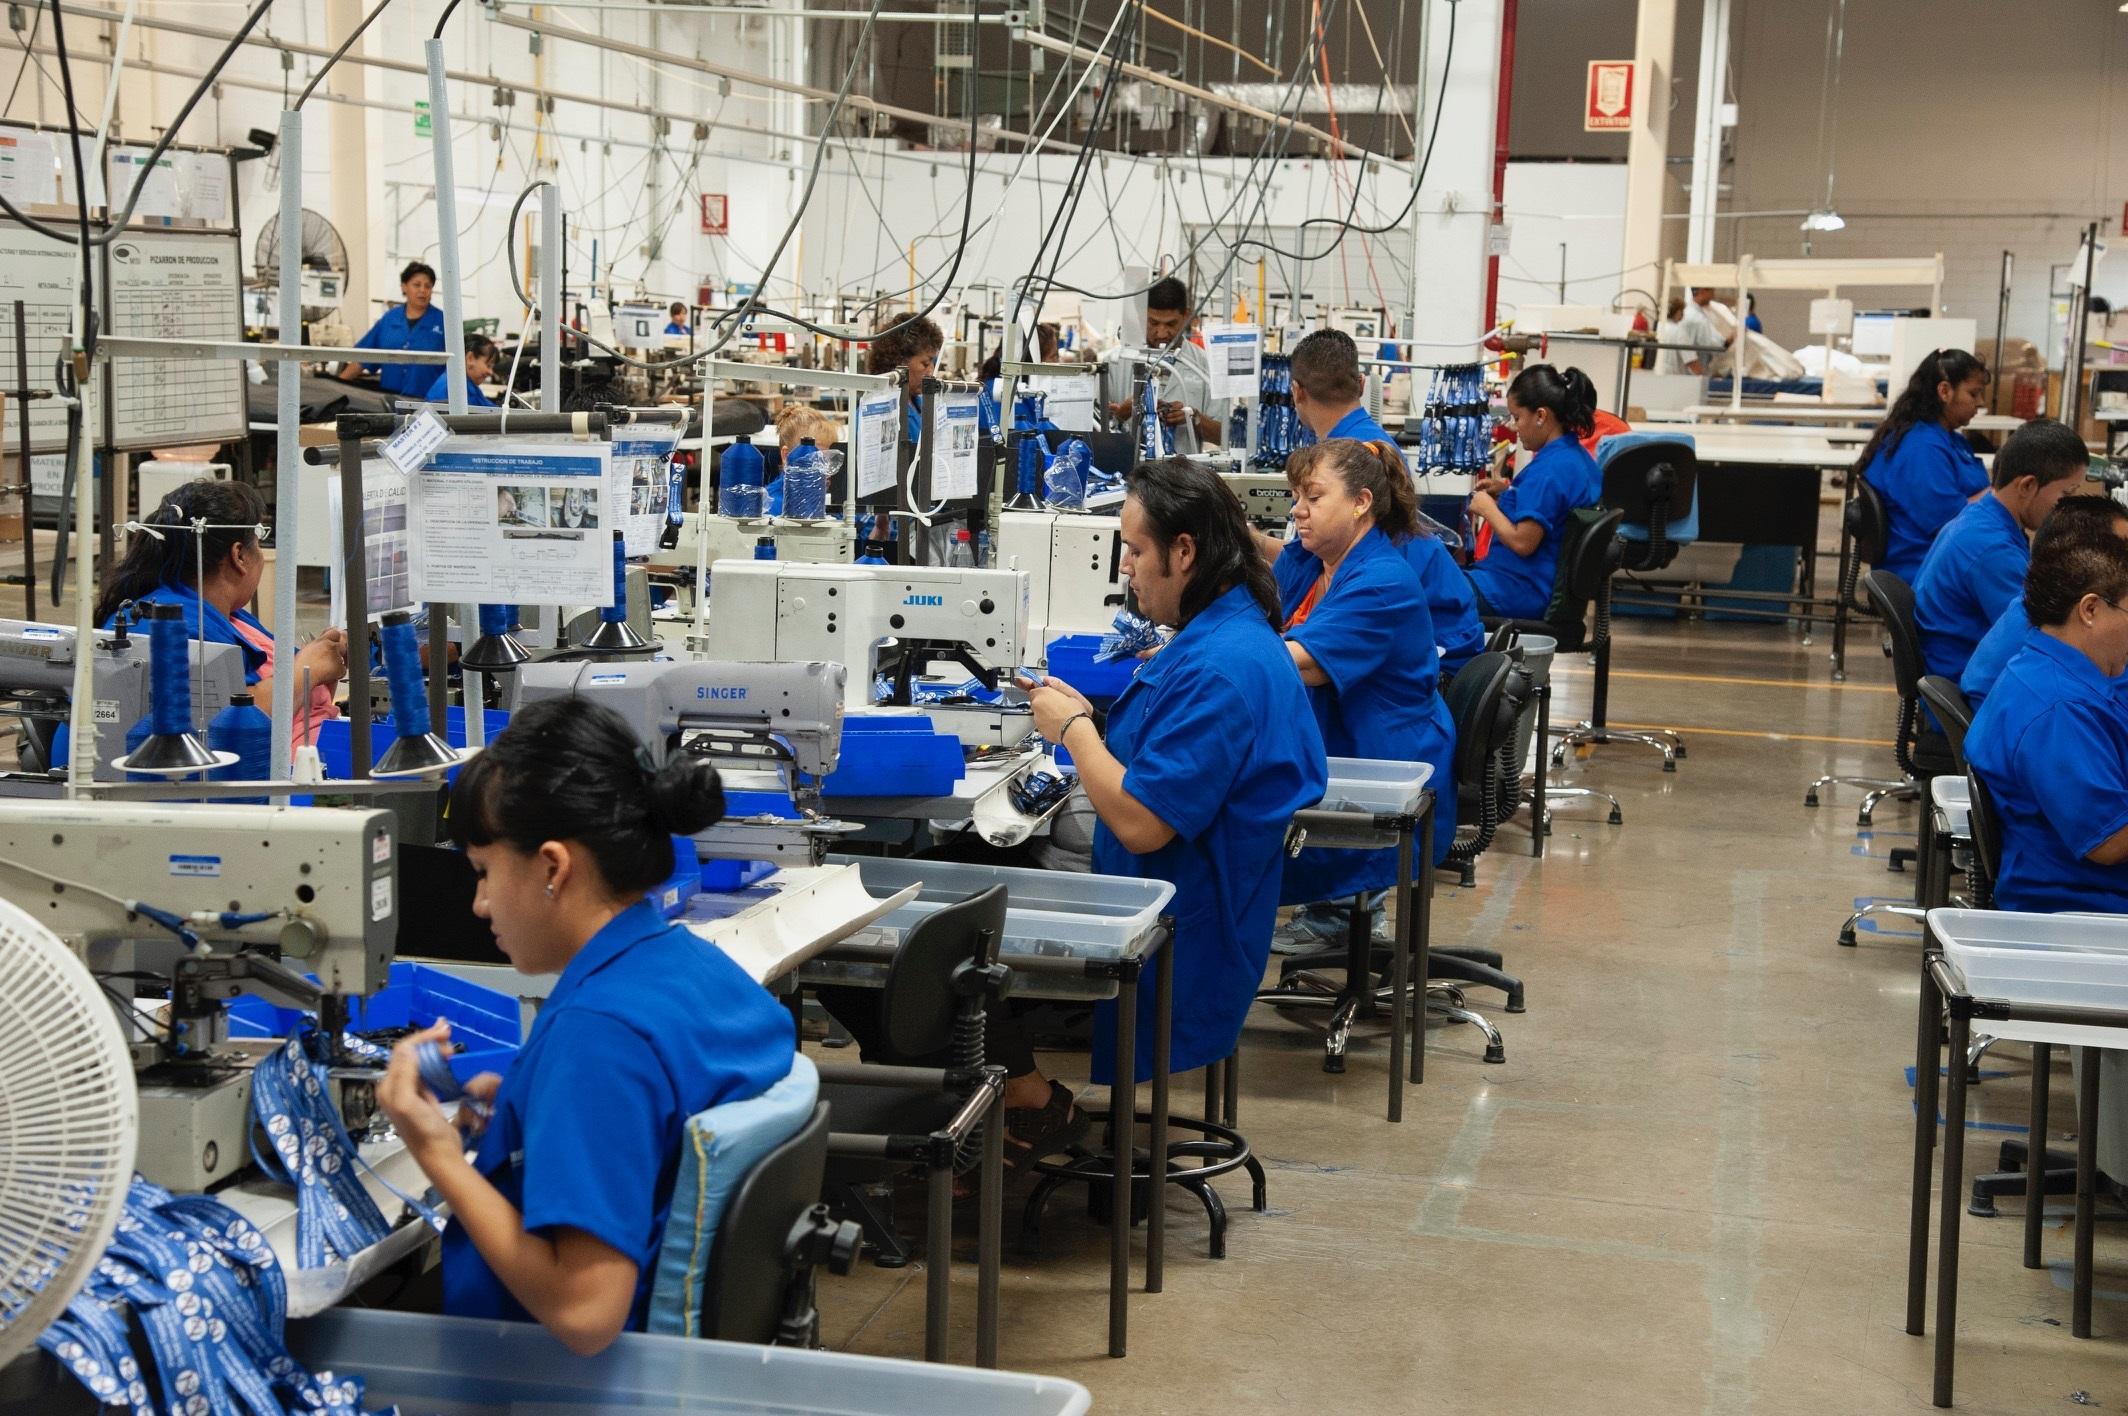 Companies in El Paso-Juarez gear up to manufacture medical supplies